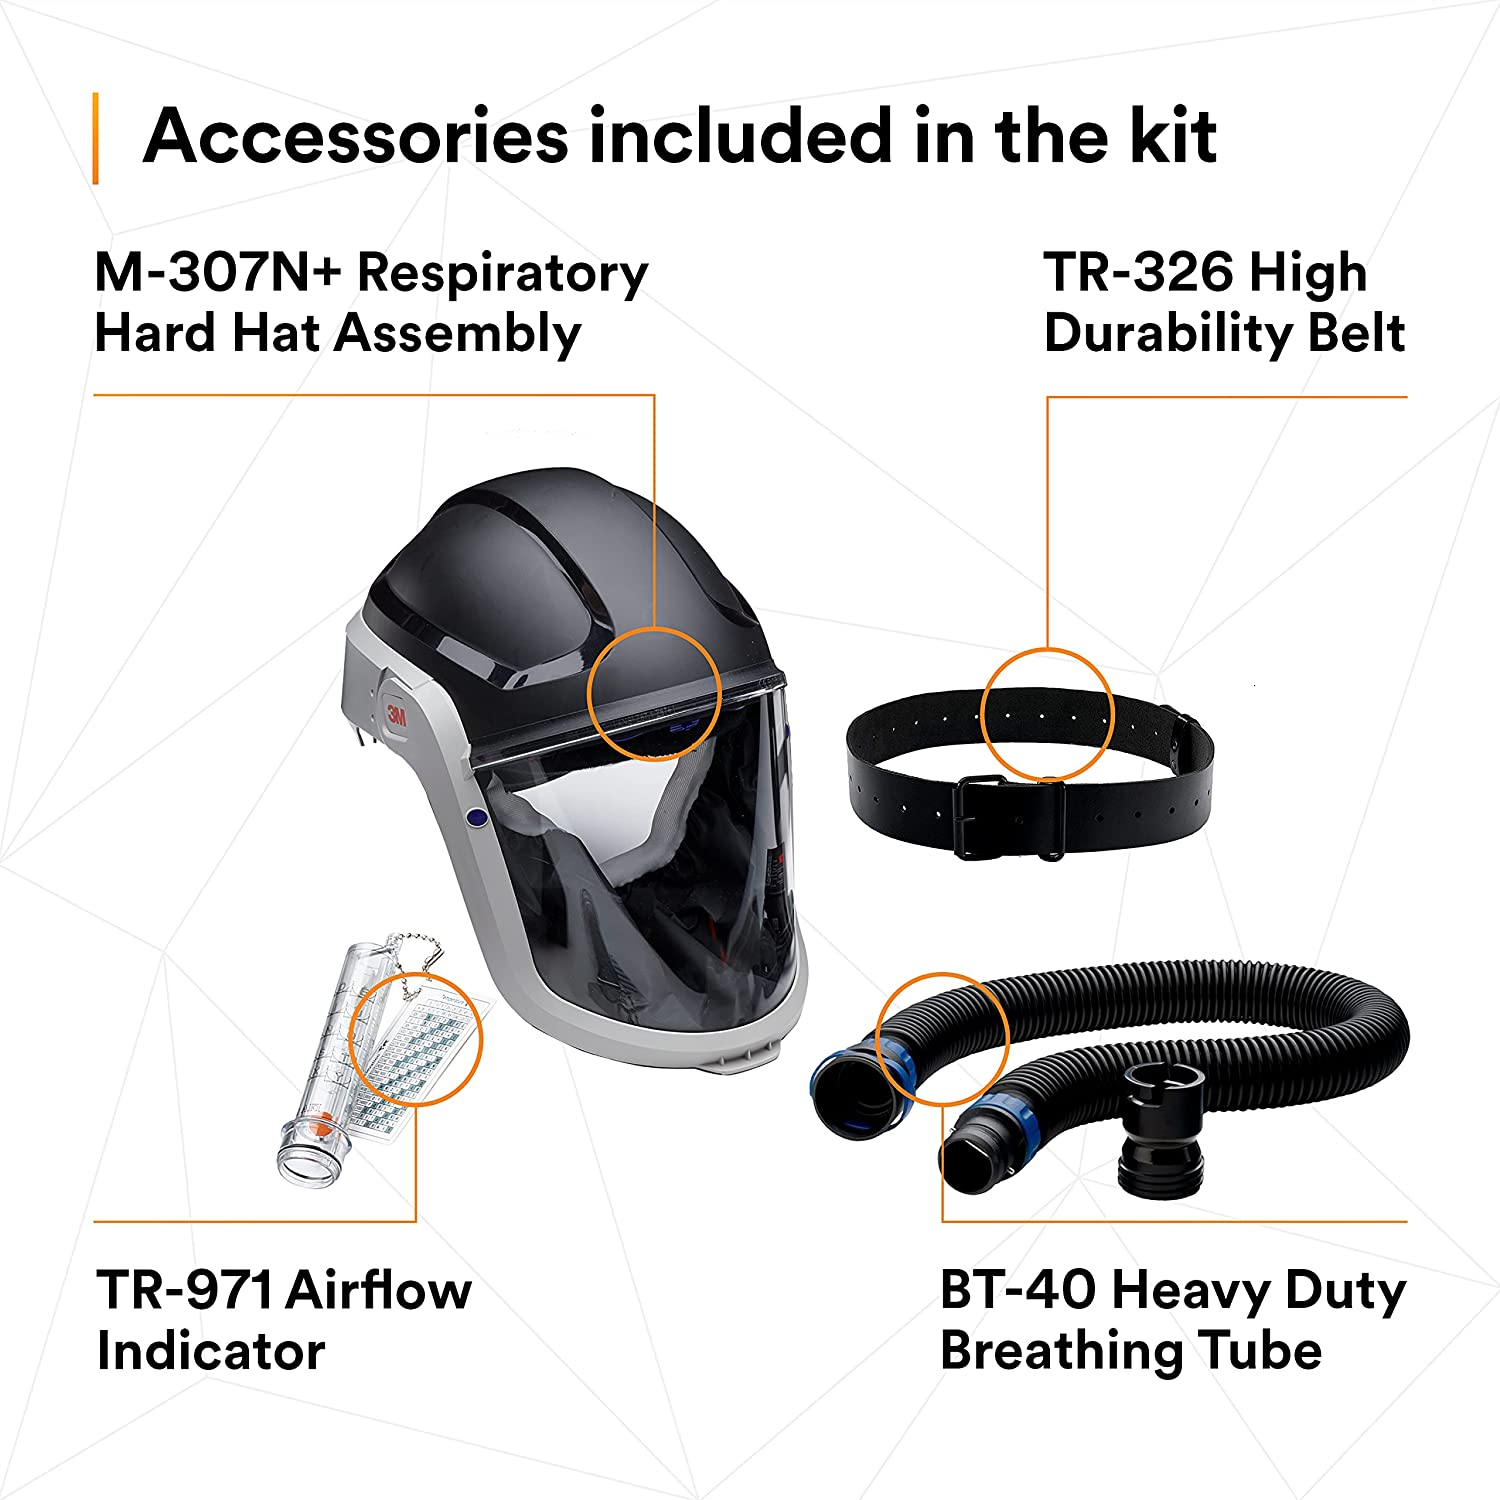 easy clean belt tr 627 and other accessories